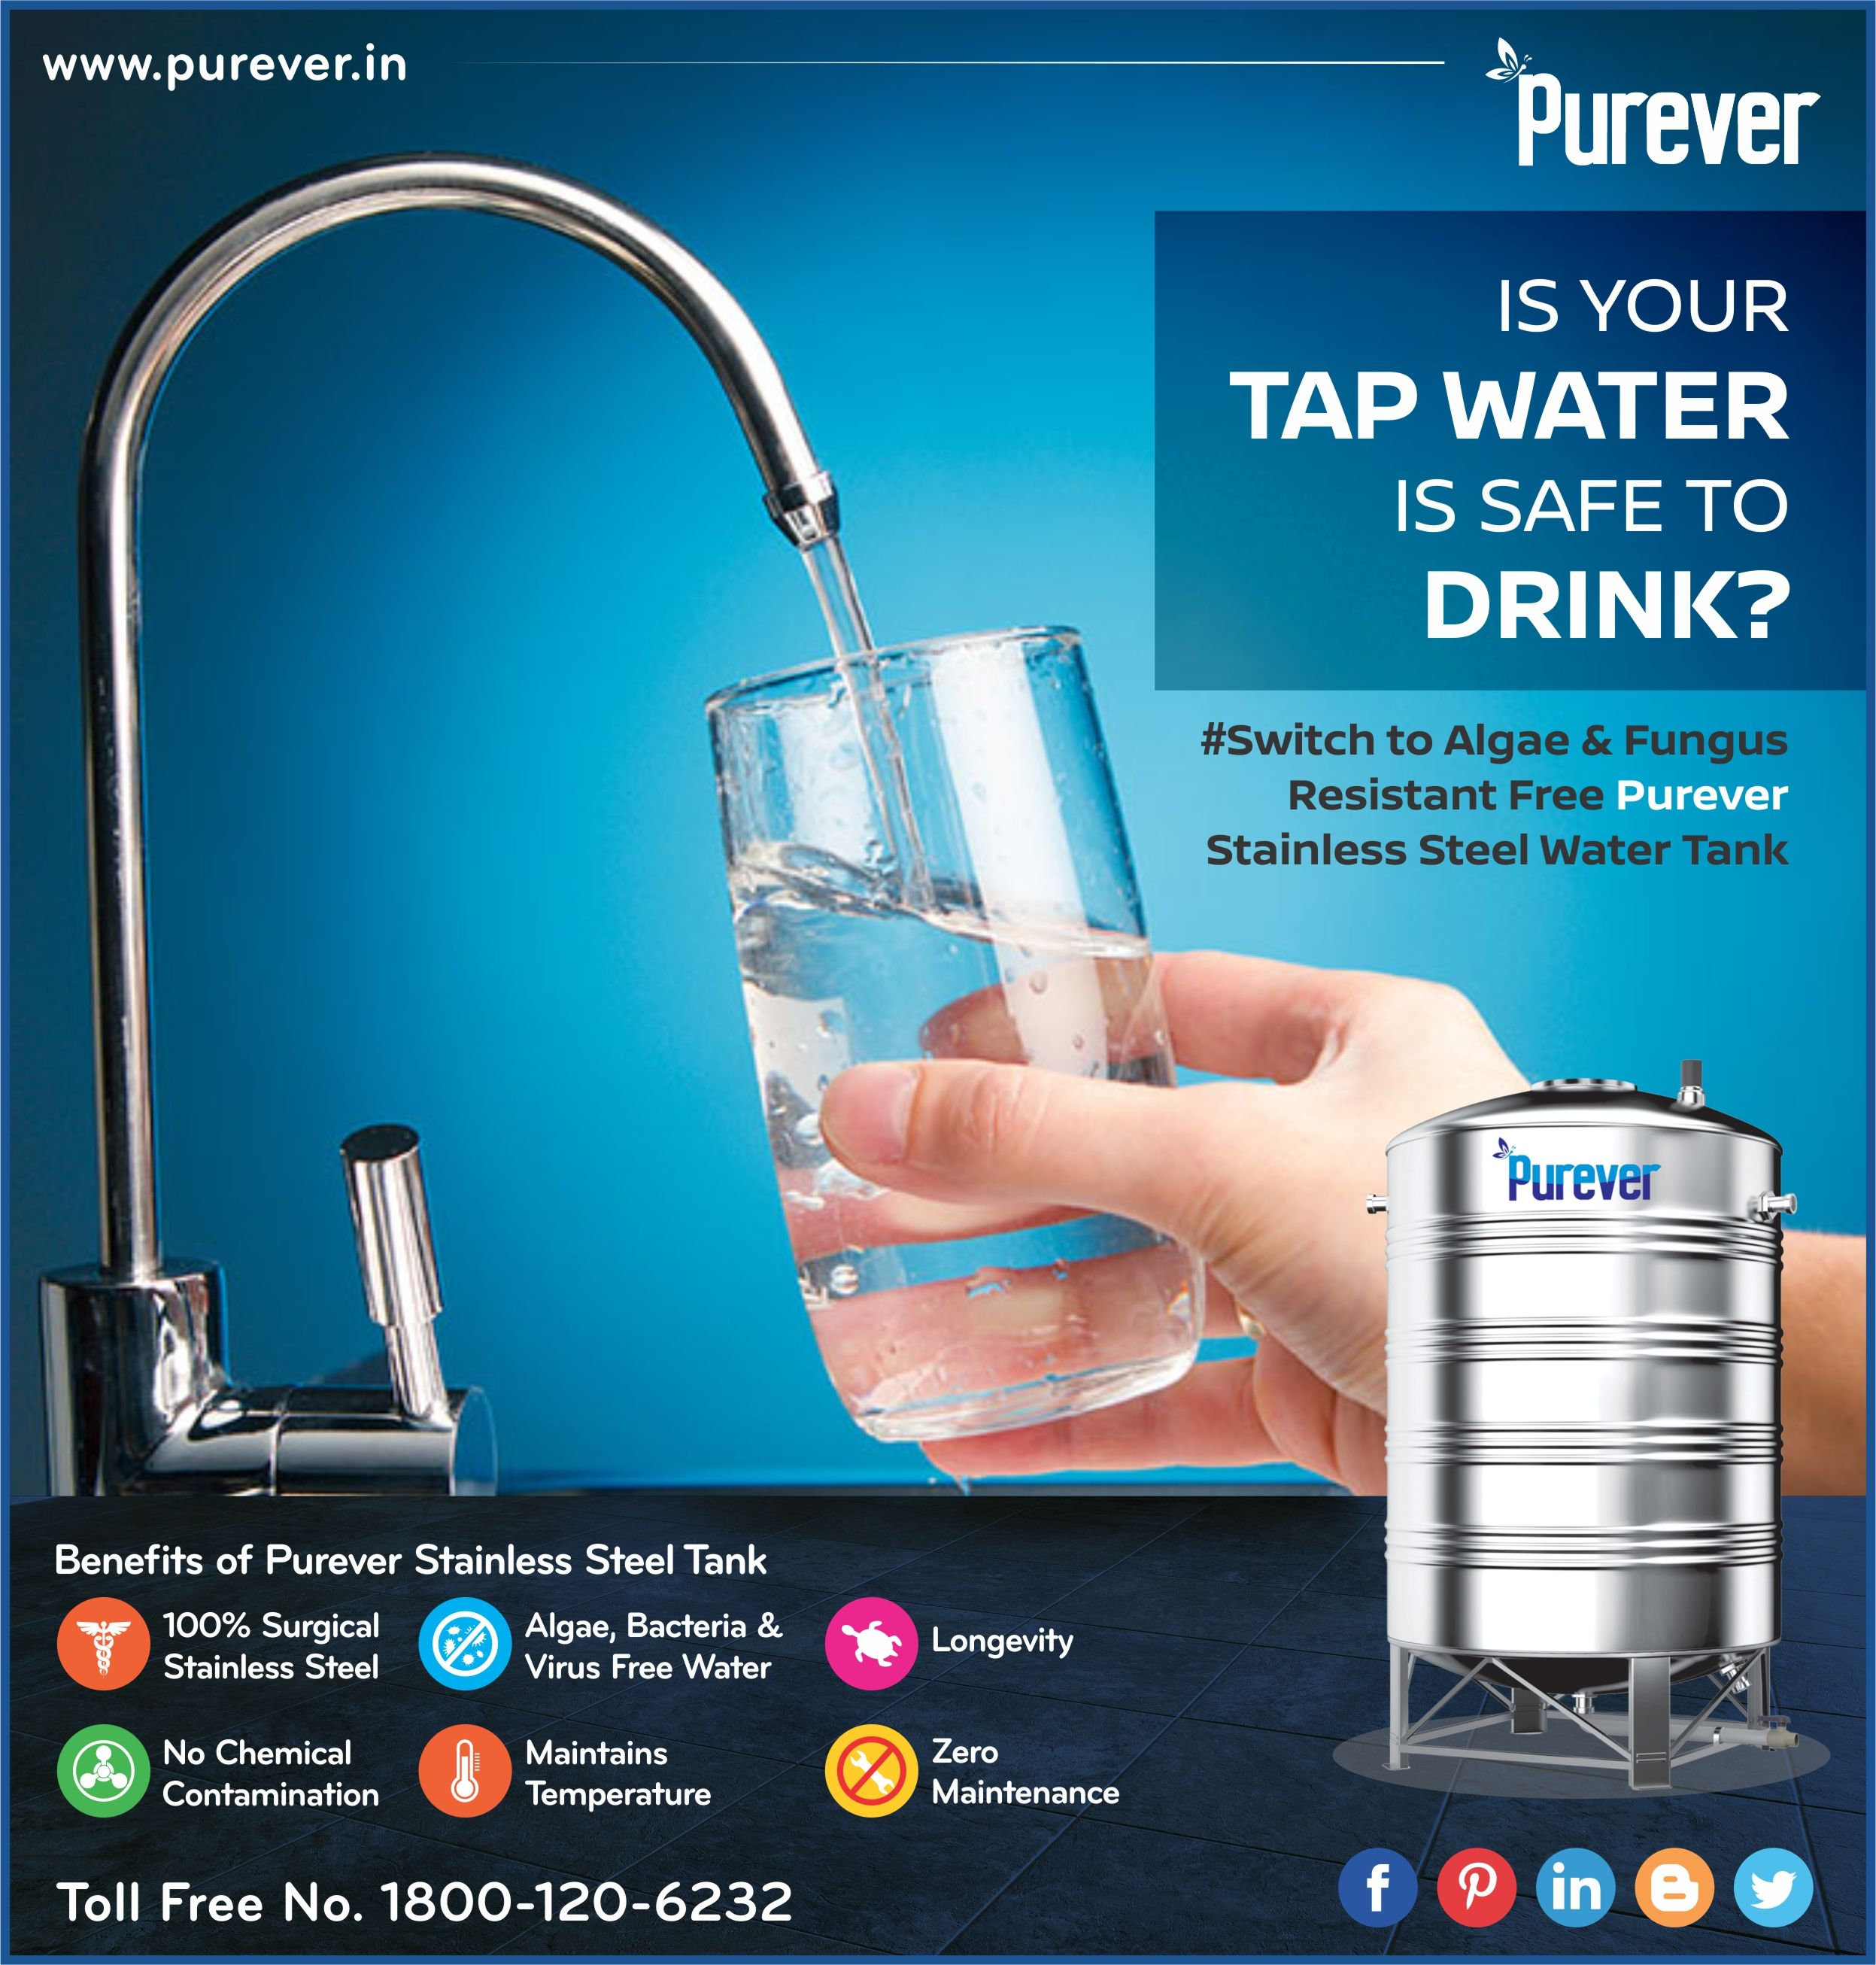 Is Your Tap Water Safe To Drink Lets Make Sure It S Safe To Drink Switch To Algae Fungus Resistan Steel Water Tanks Water Tank Stainless Steel Tanks